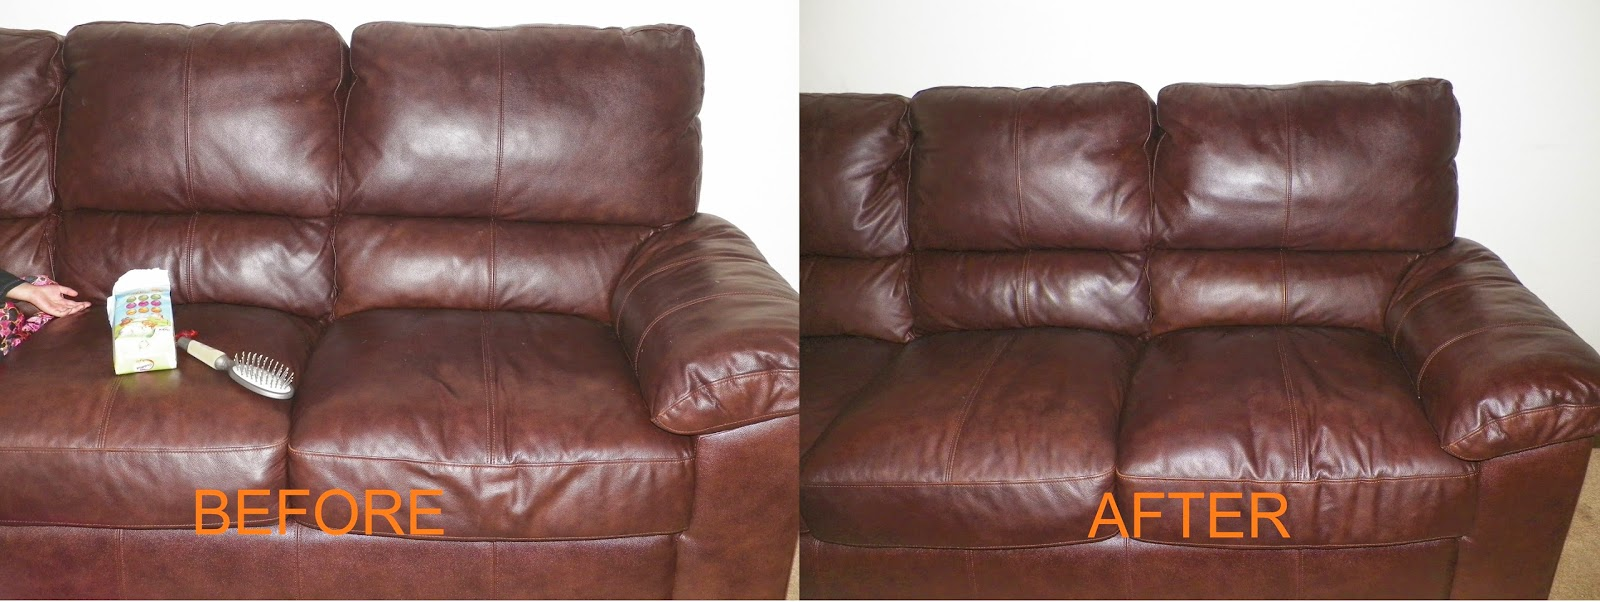 After Applying The Leather Milk On Our Sofa, The End Effect After Buffing  Was Amazing. I Had Forgotten How Our Sofa Used To Look Like And The  Chamberlainu0027s ...